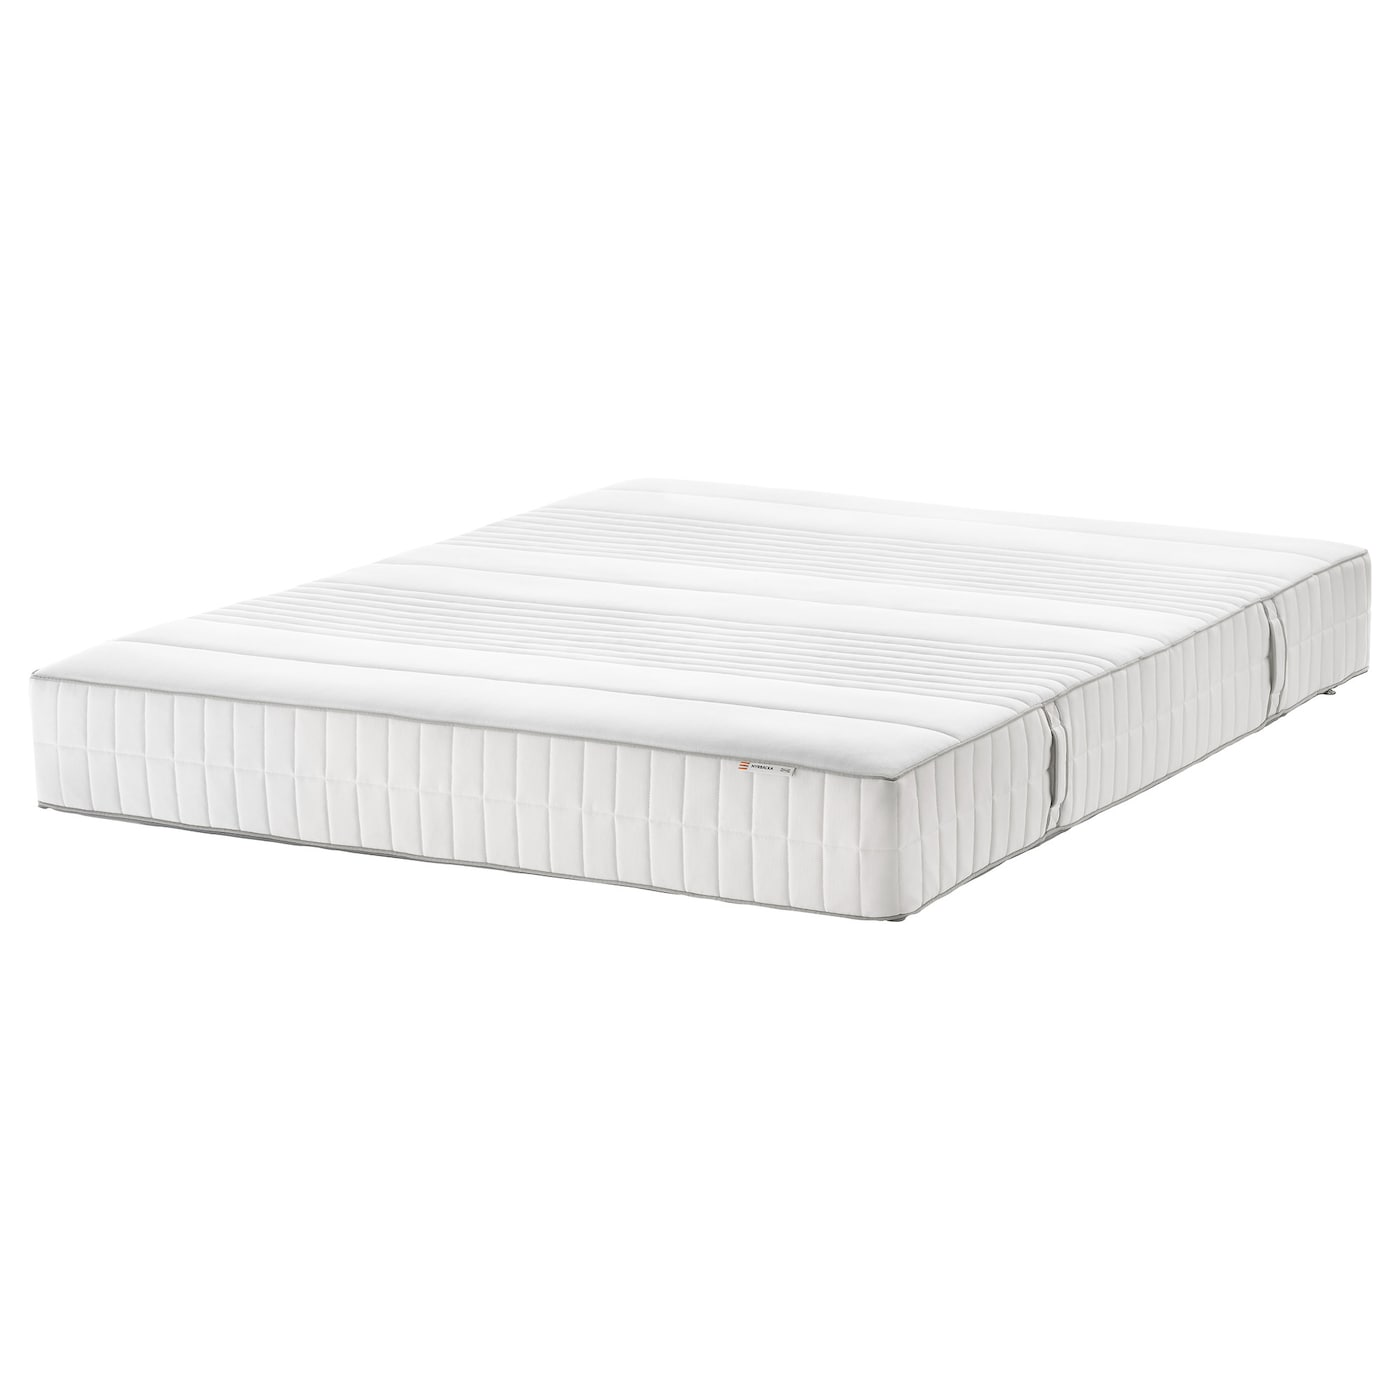 myrbacka matelas mousse m m de forme ferme blanc 140 x 200 cm ikea. Black Bedroom Furniture Sets. Home Design Ideas